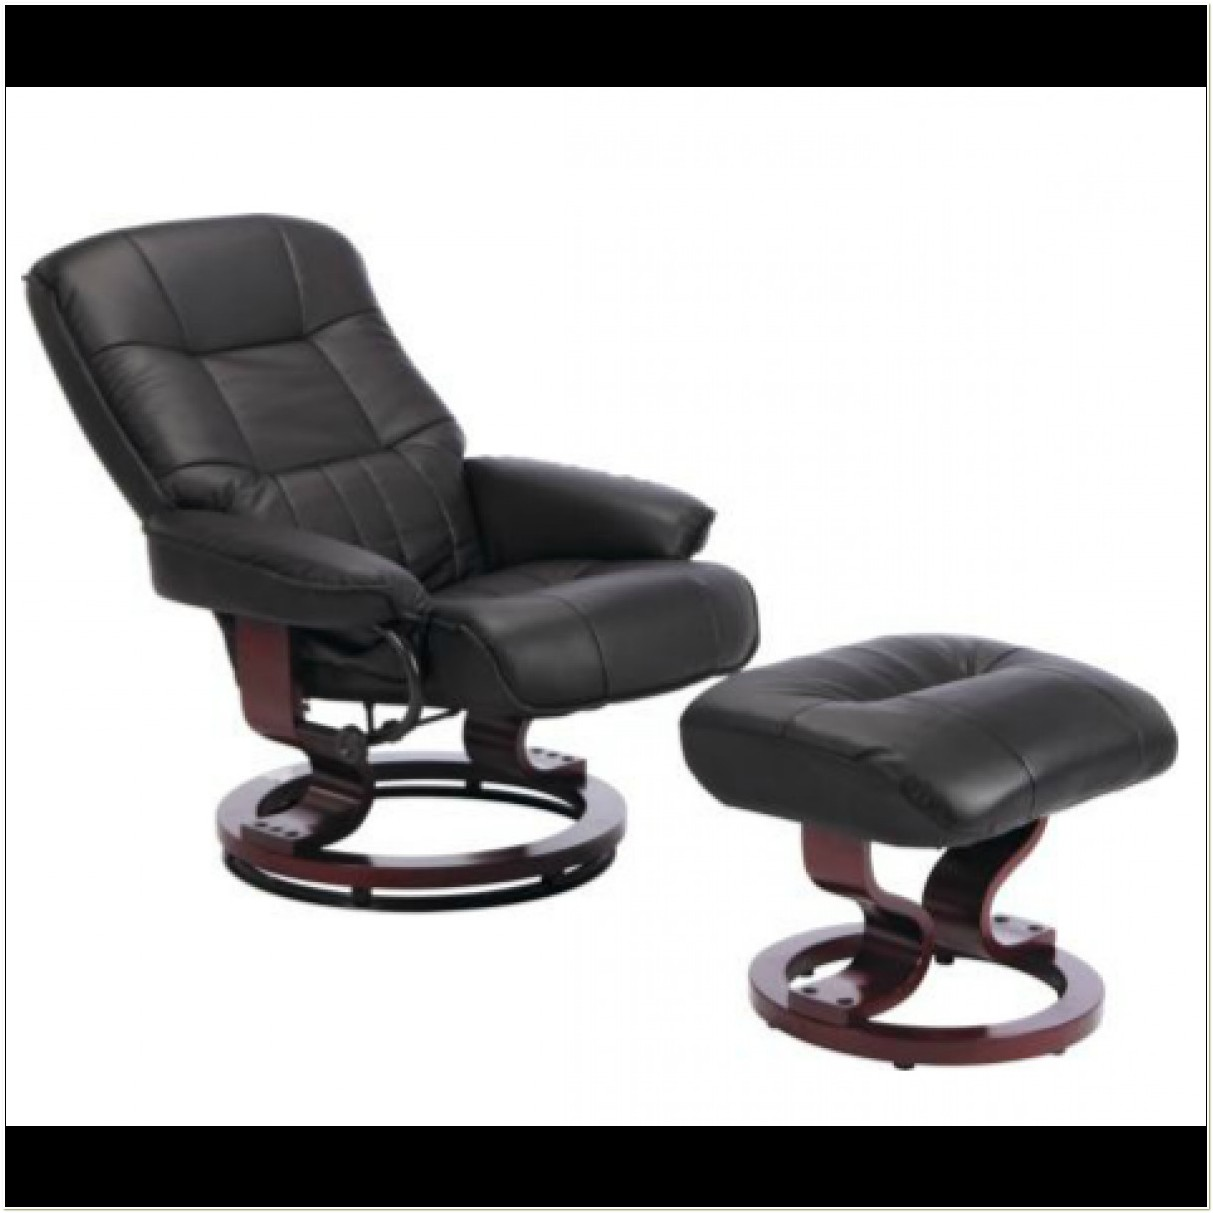 Leather Recliner Chair And Footstool